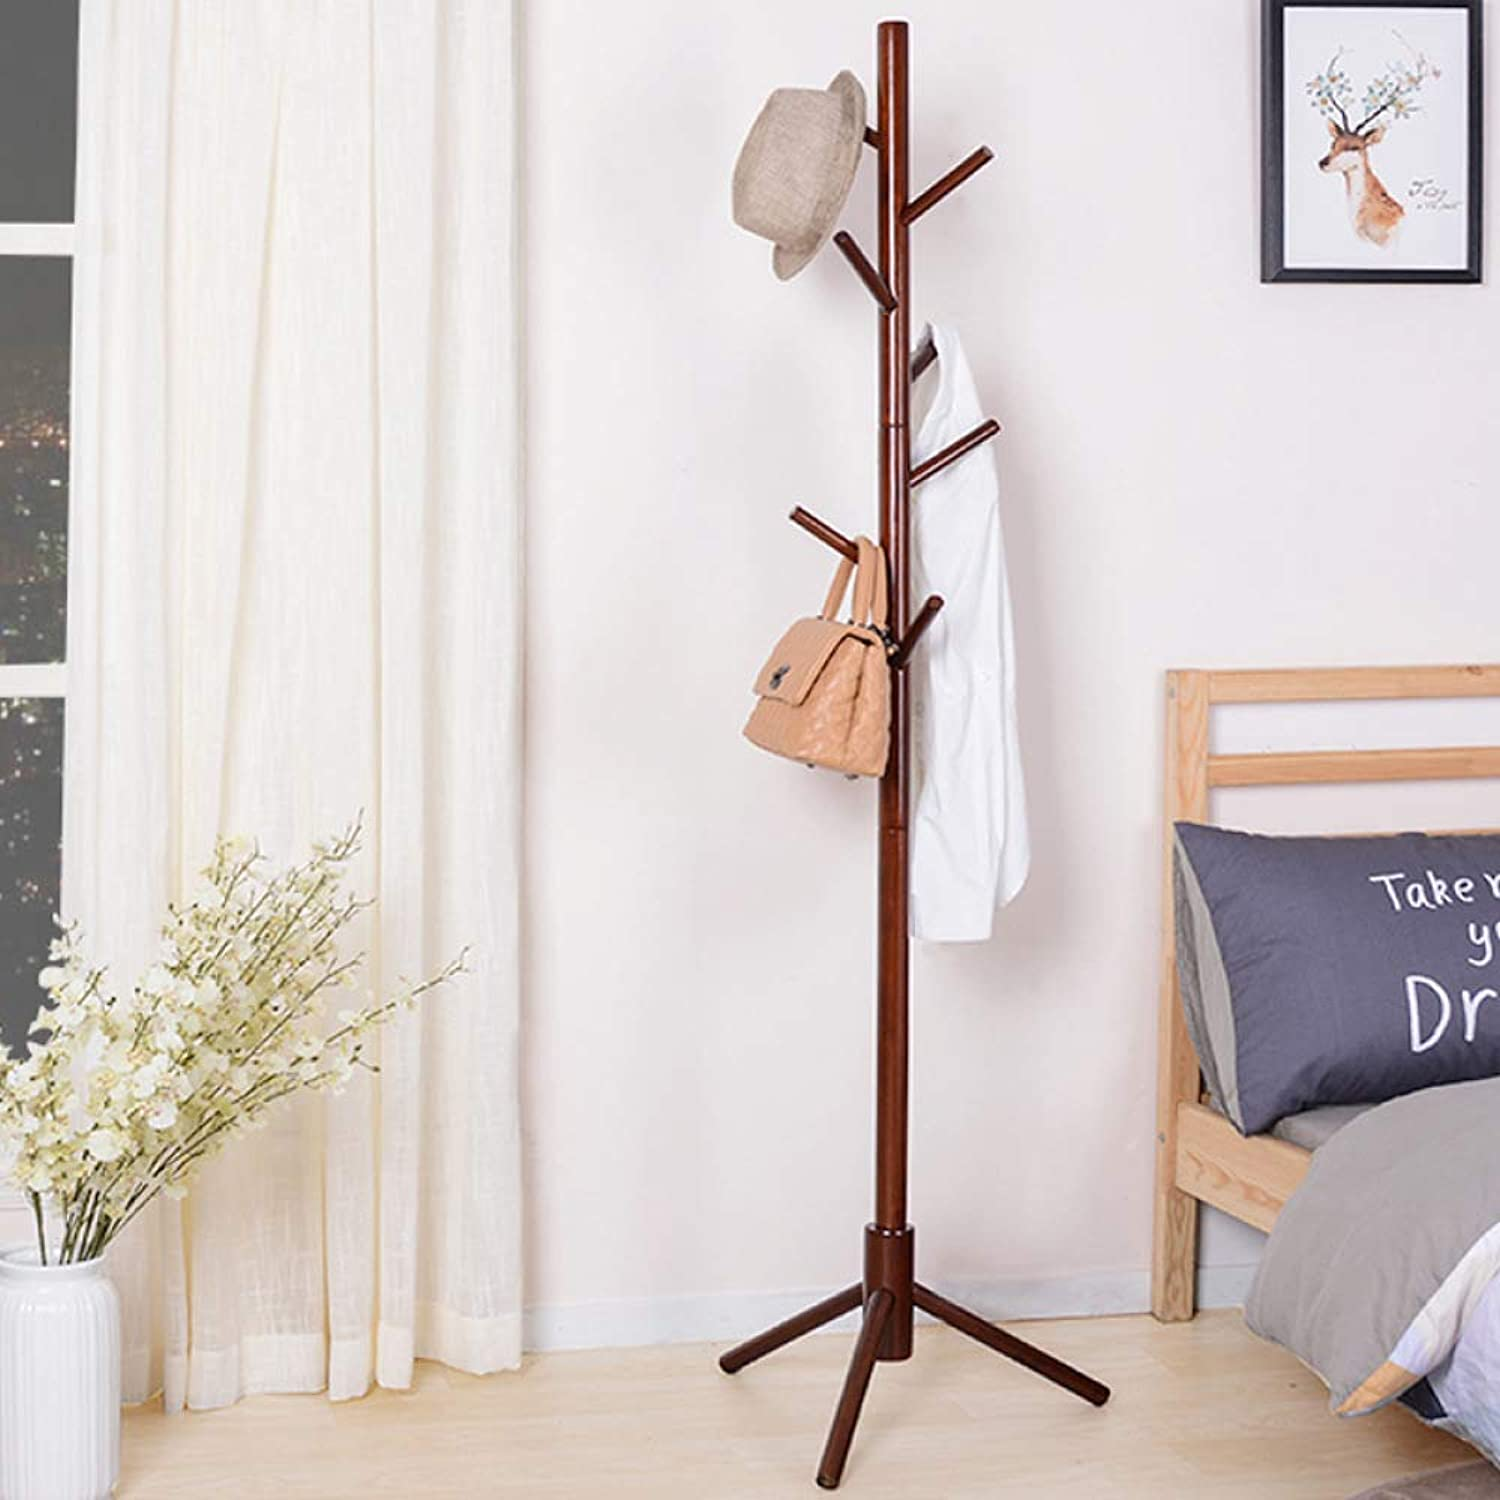 Dixinla Coat Stand,Modern Simple Solid Wood Coat Rack Falling Creative Living Room Bedroom Hanger Decorative Furniture (Combination Inssizetion)